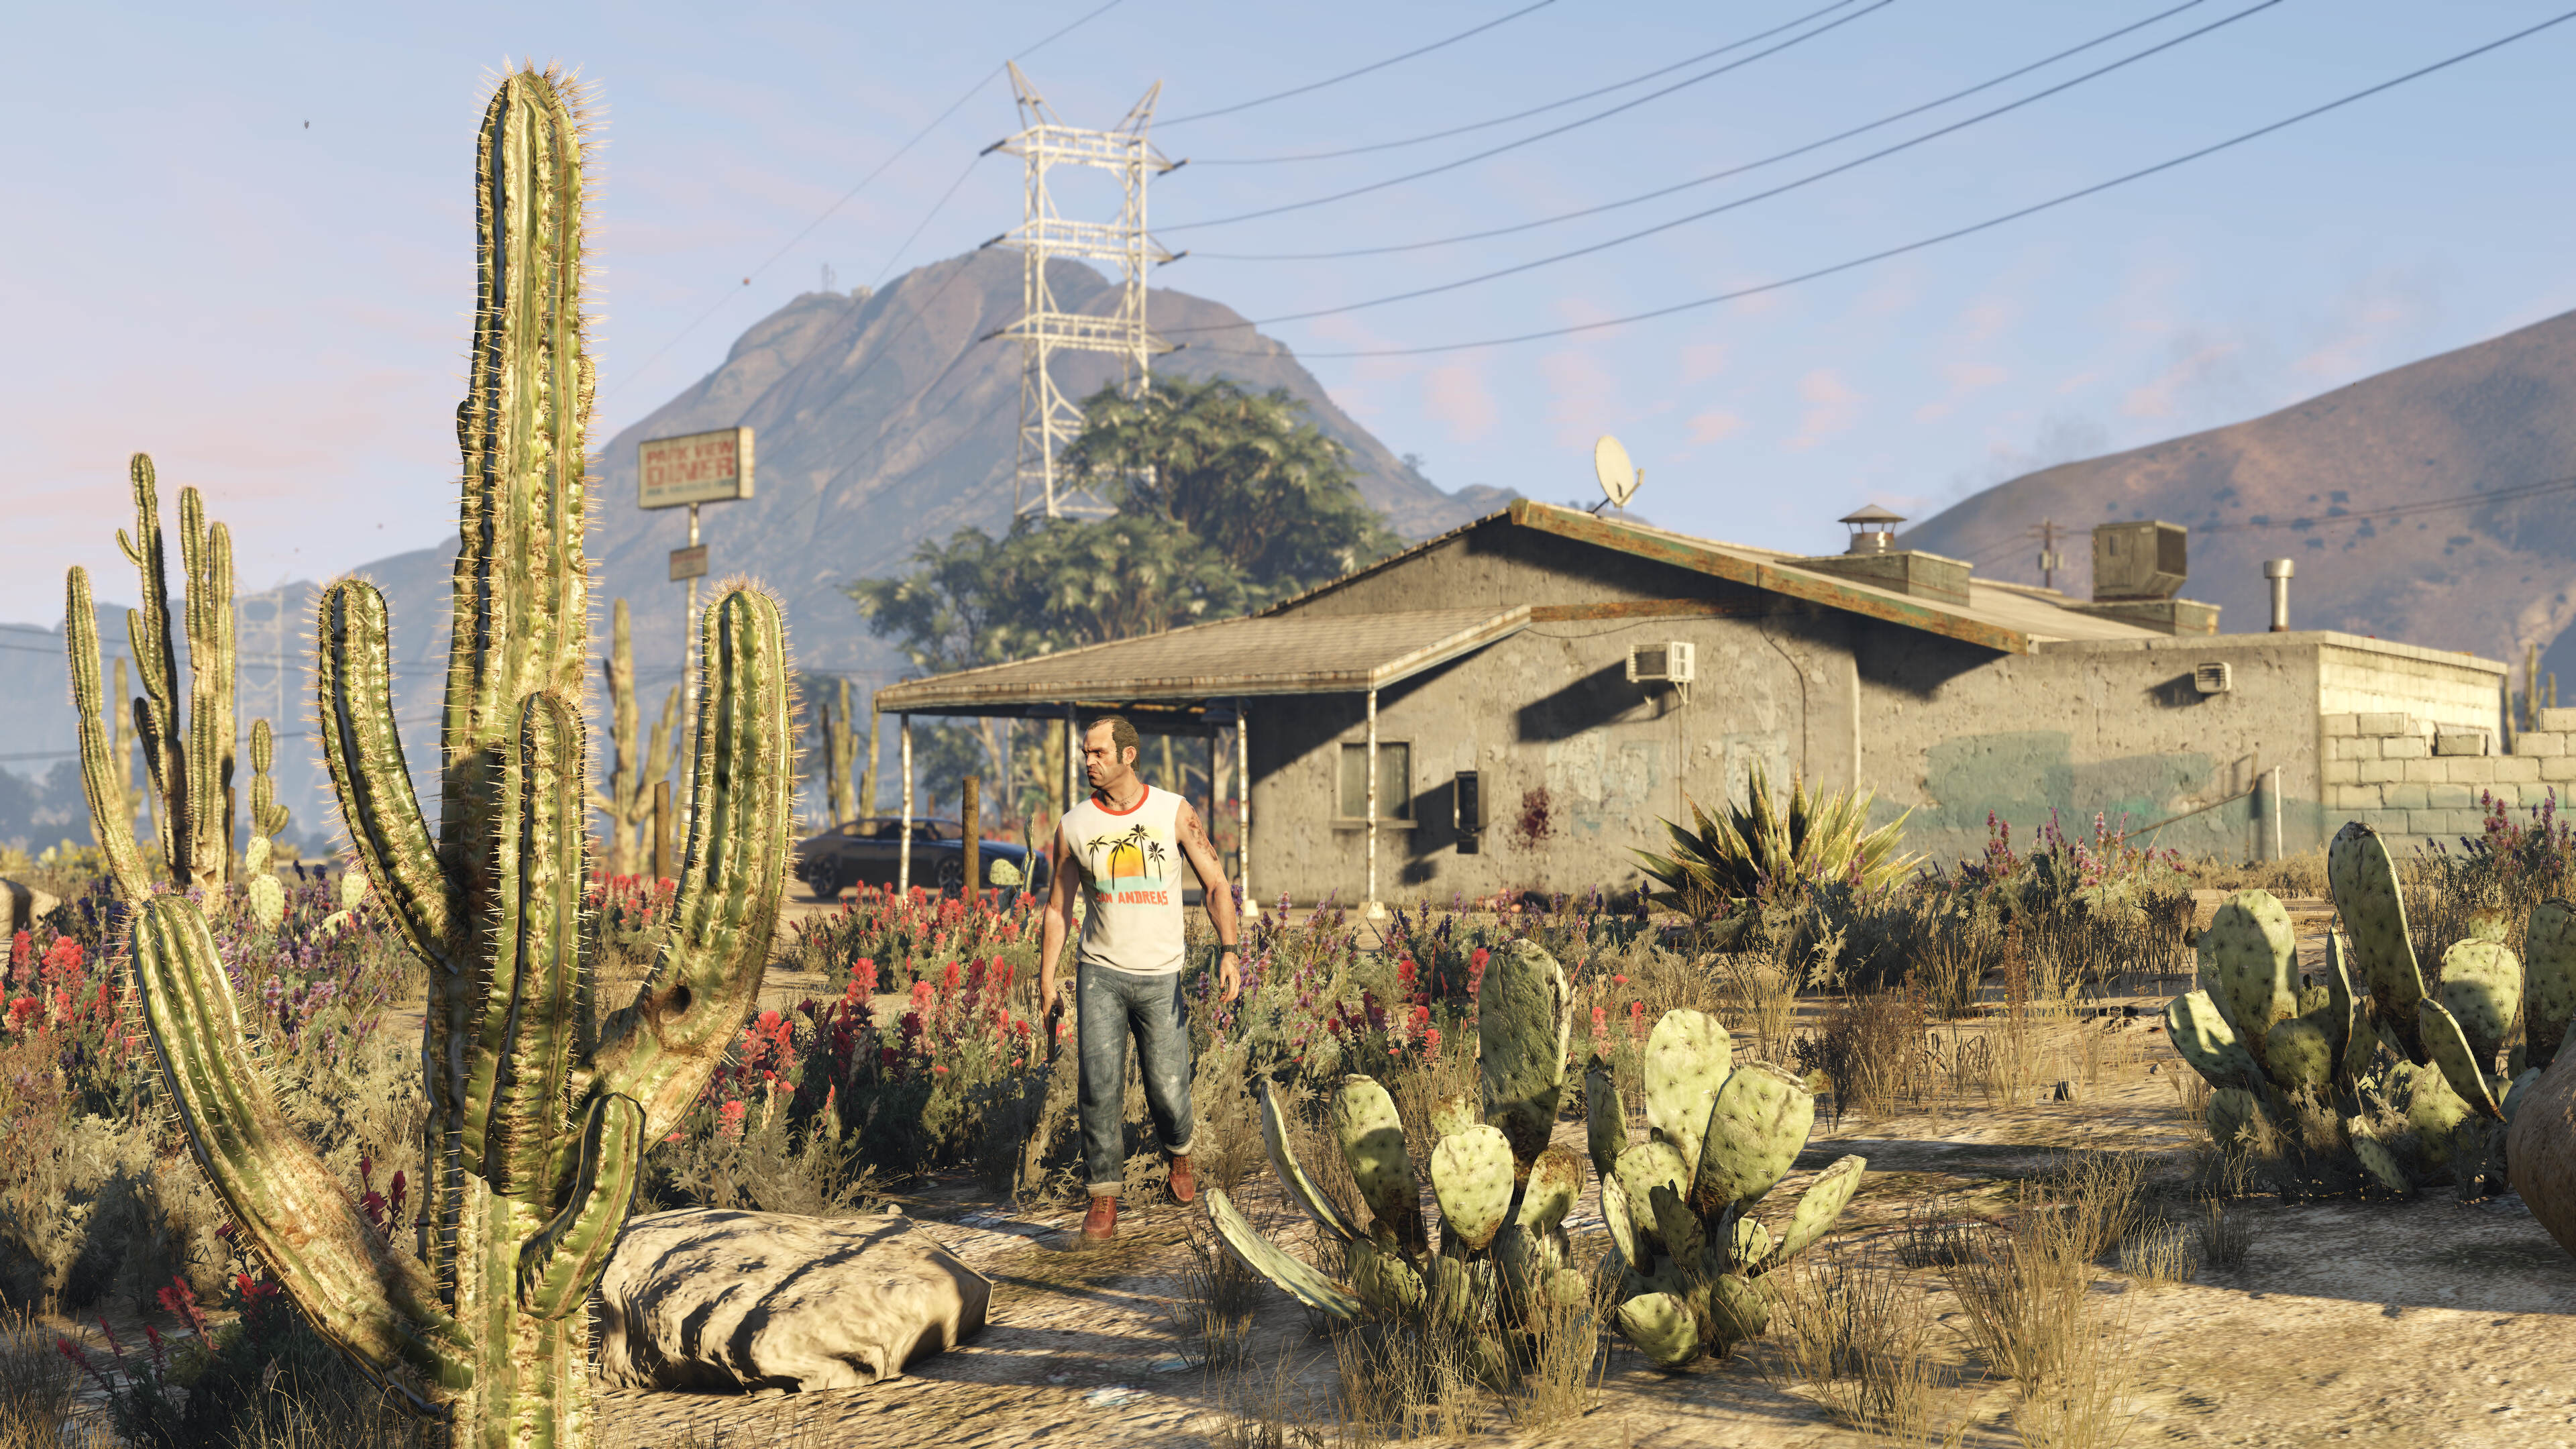 grand theft auto 5s latest pc screenshots sure are a looker 142748223863 Rockstar Release Much Anticipated Grand Theft Auto V PC Screenshots